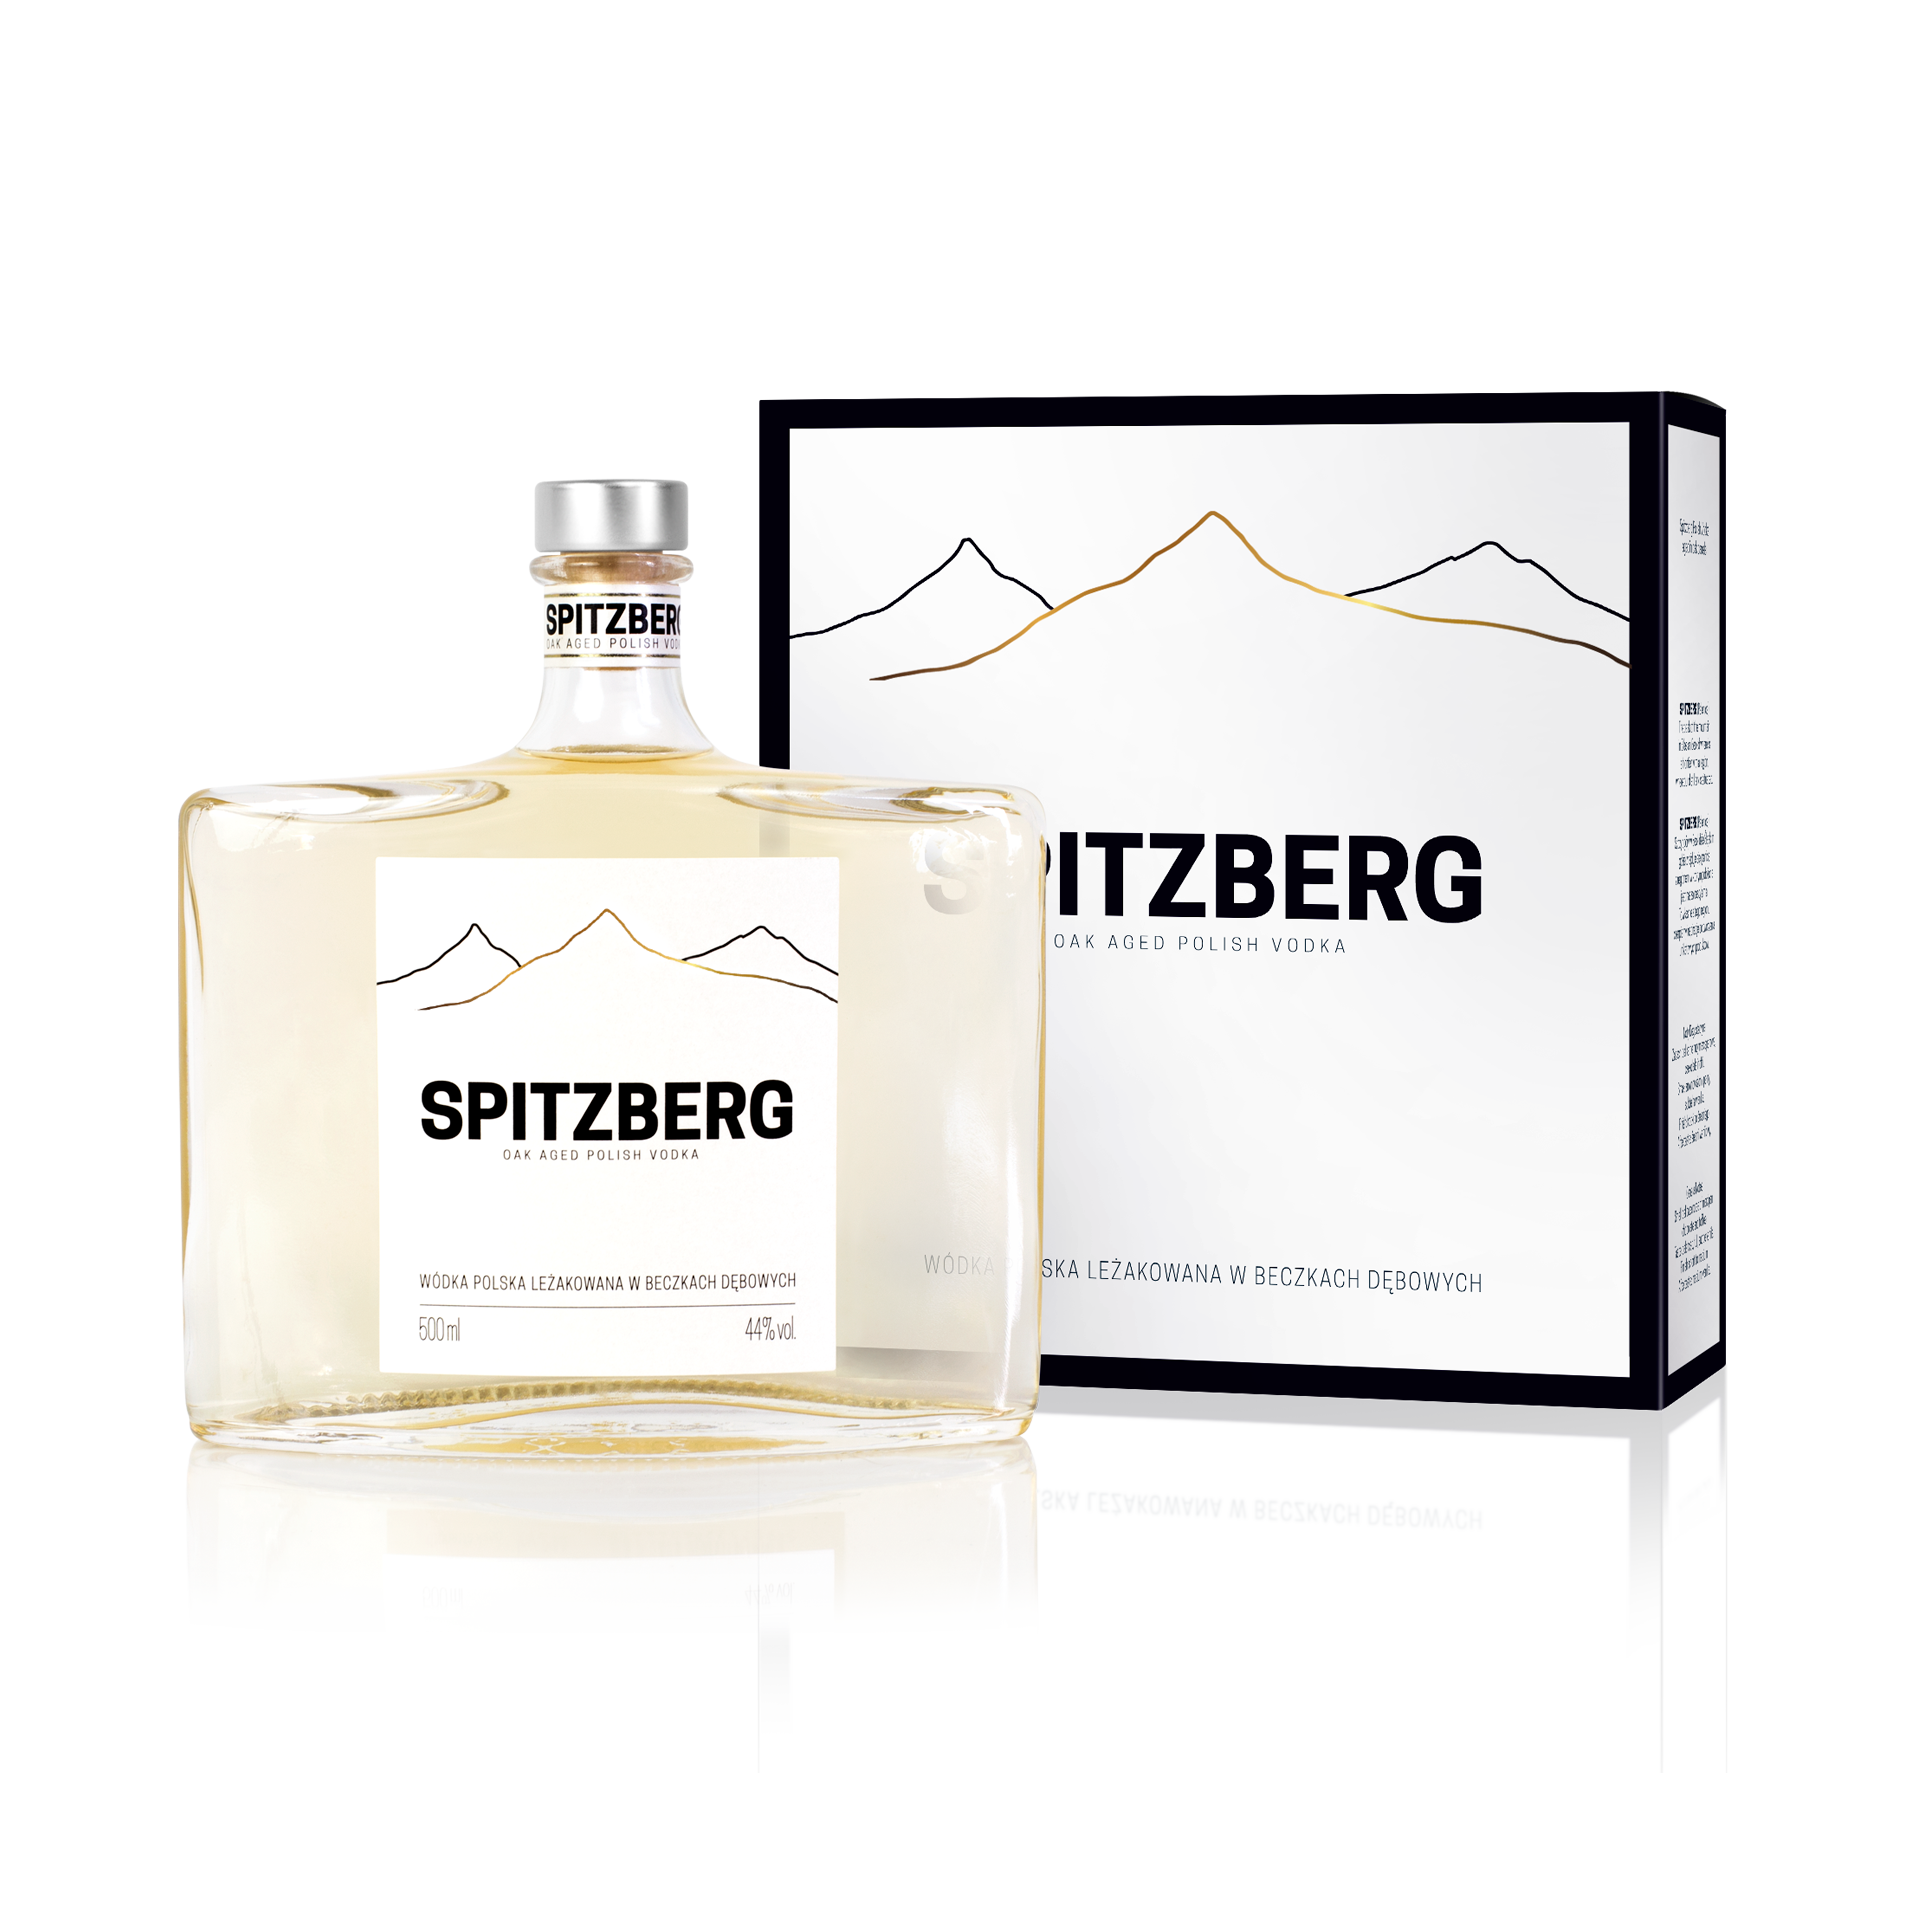 SPITZBERG OAK AGED POLISH VODKA